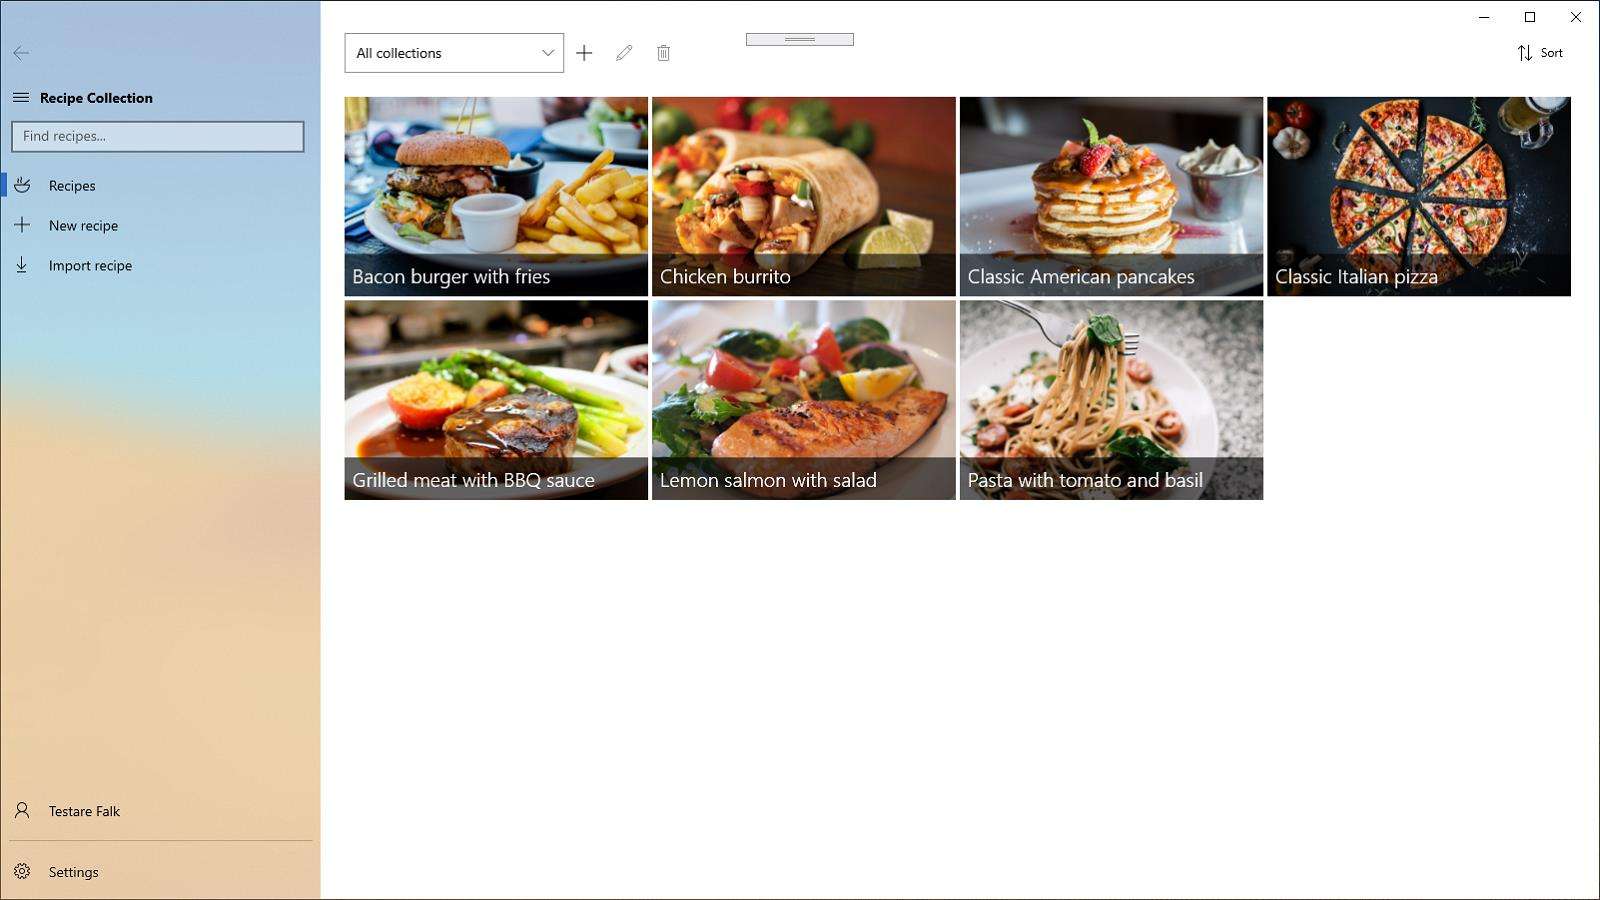 Preview image for Recipe Collection